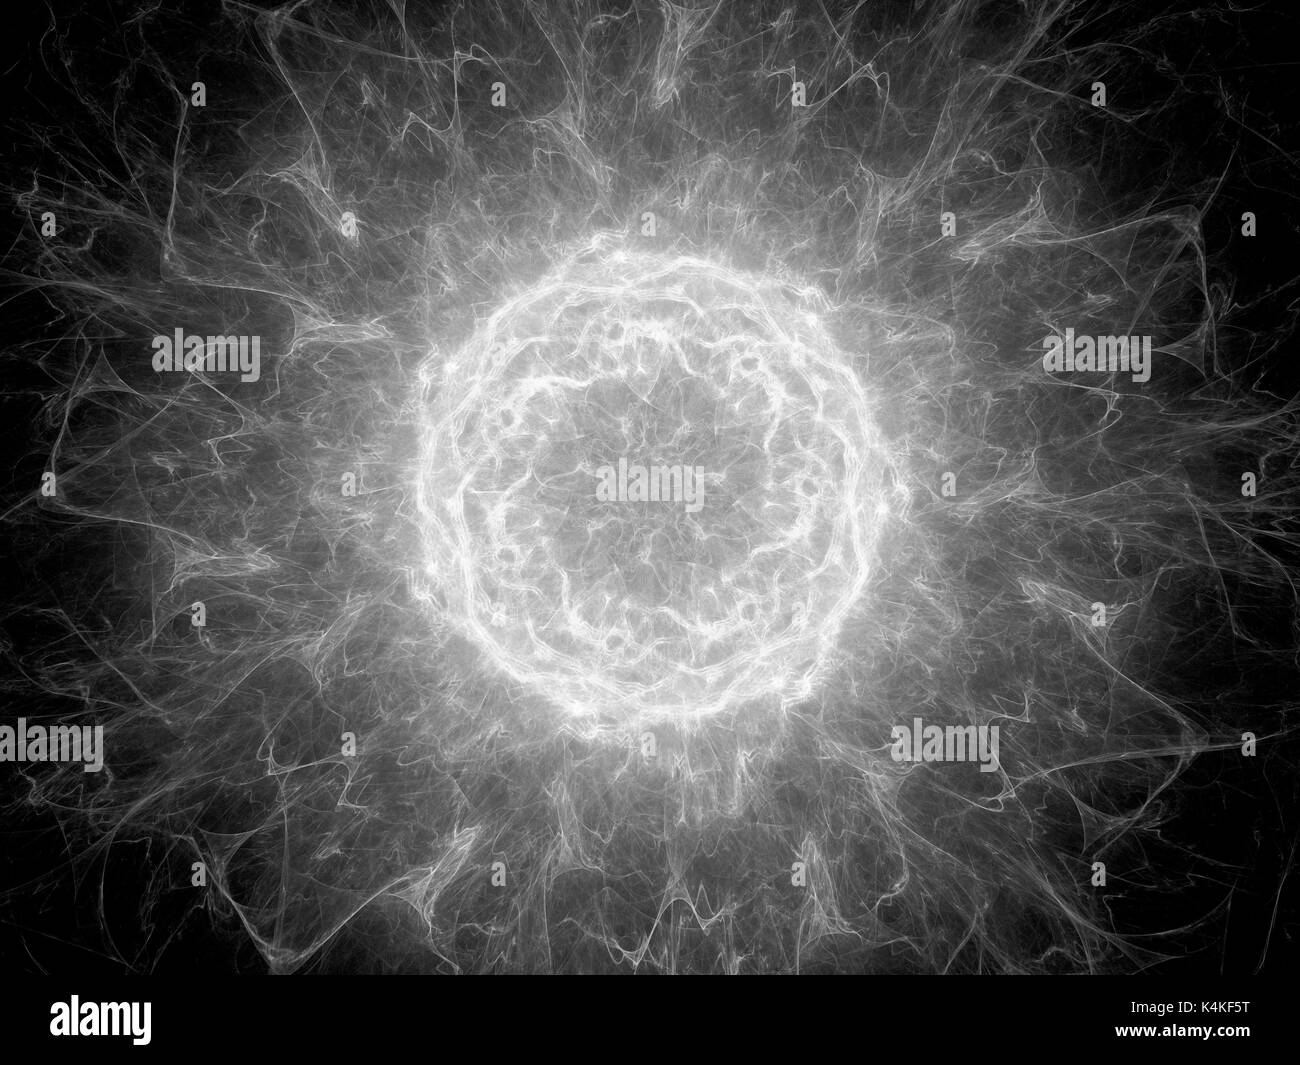 Glowing plasma torus in space, high voltage, black and white texture, computer generated abstract background, 3D rendering Stock Photo